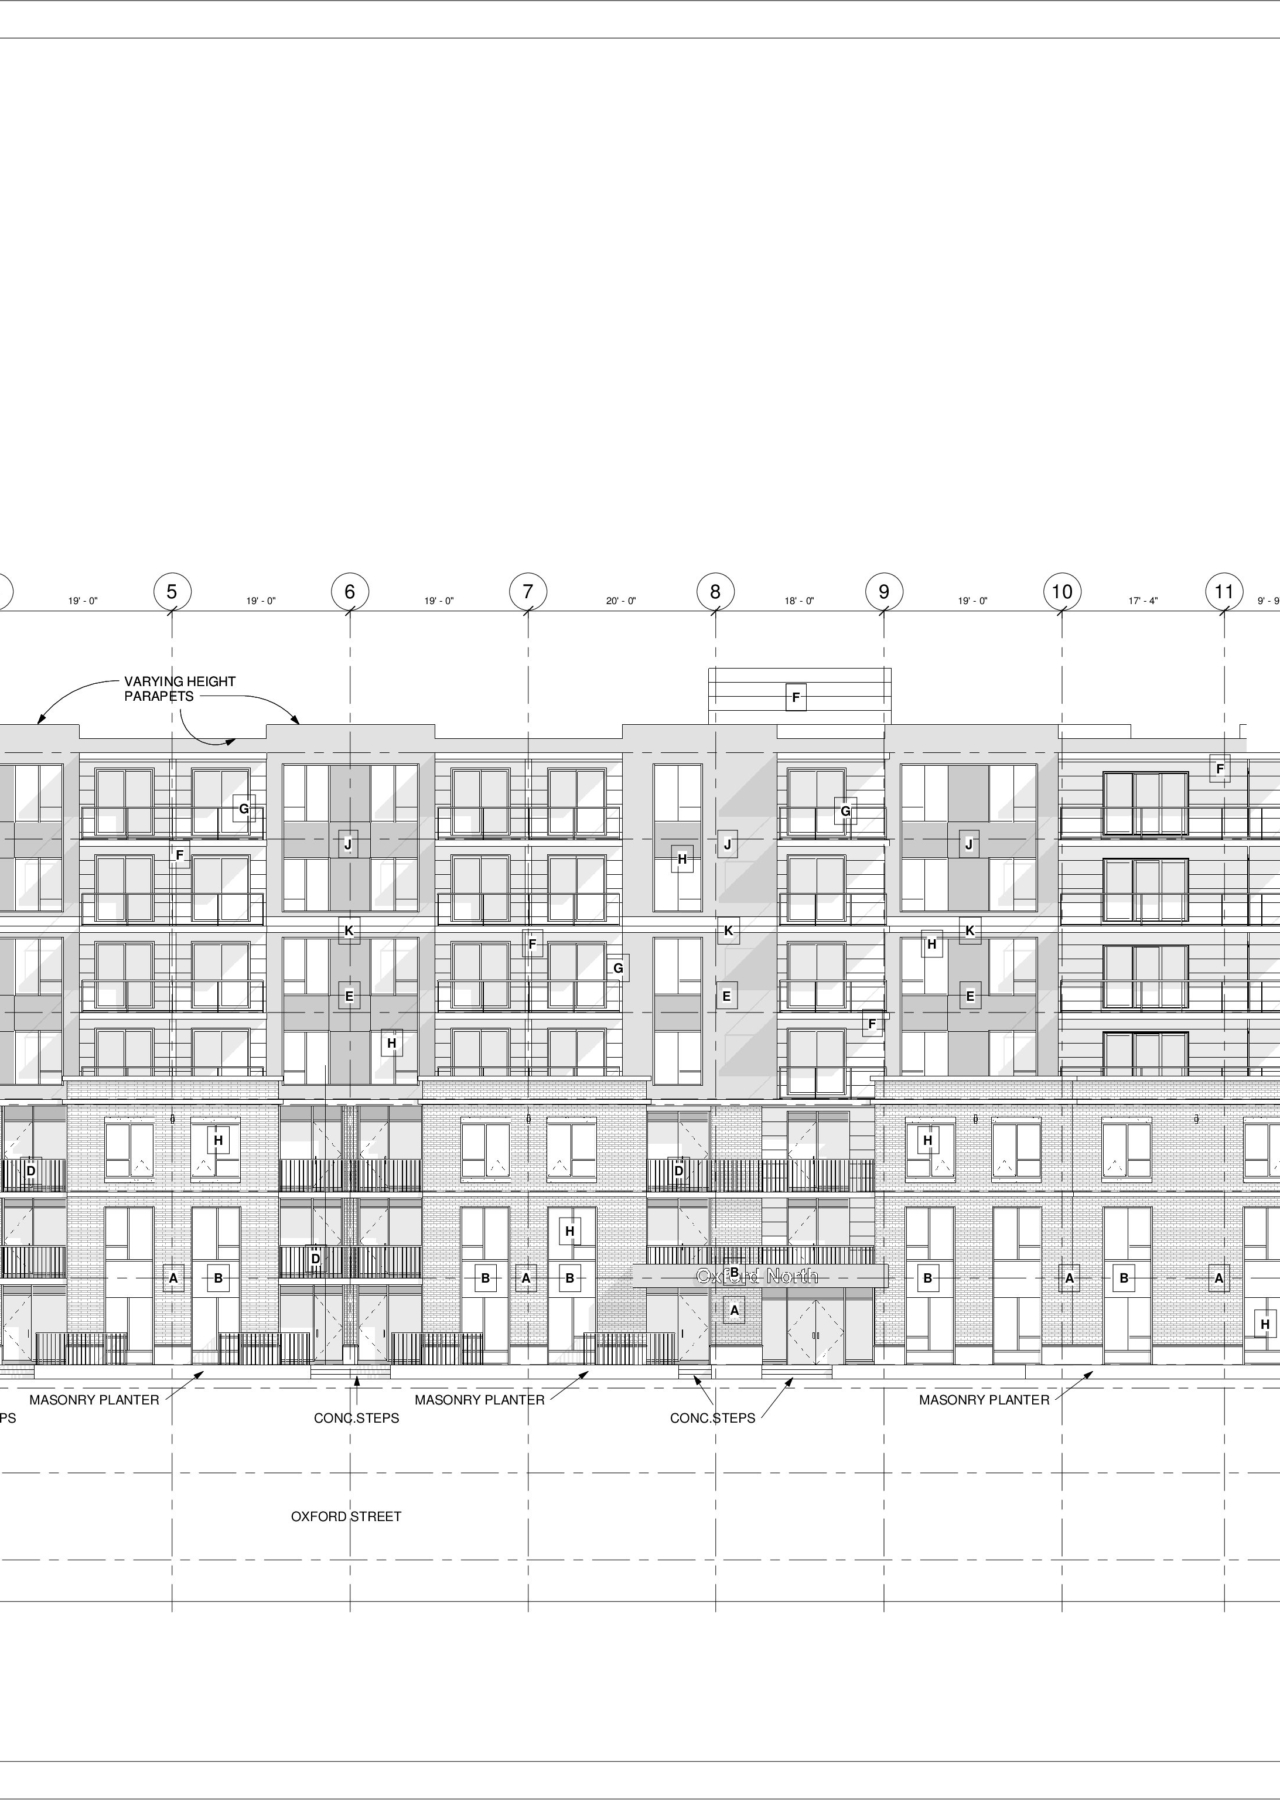 3093 Oxford – North – Sheet – A4-0 – South Elevation